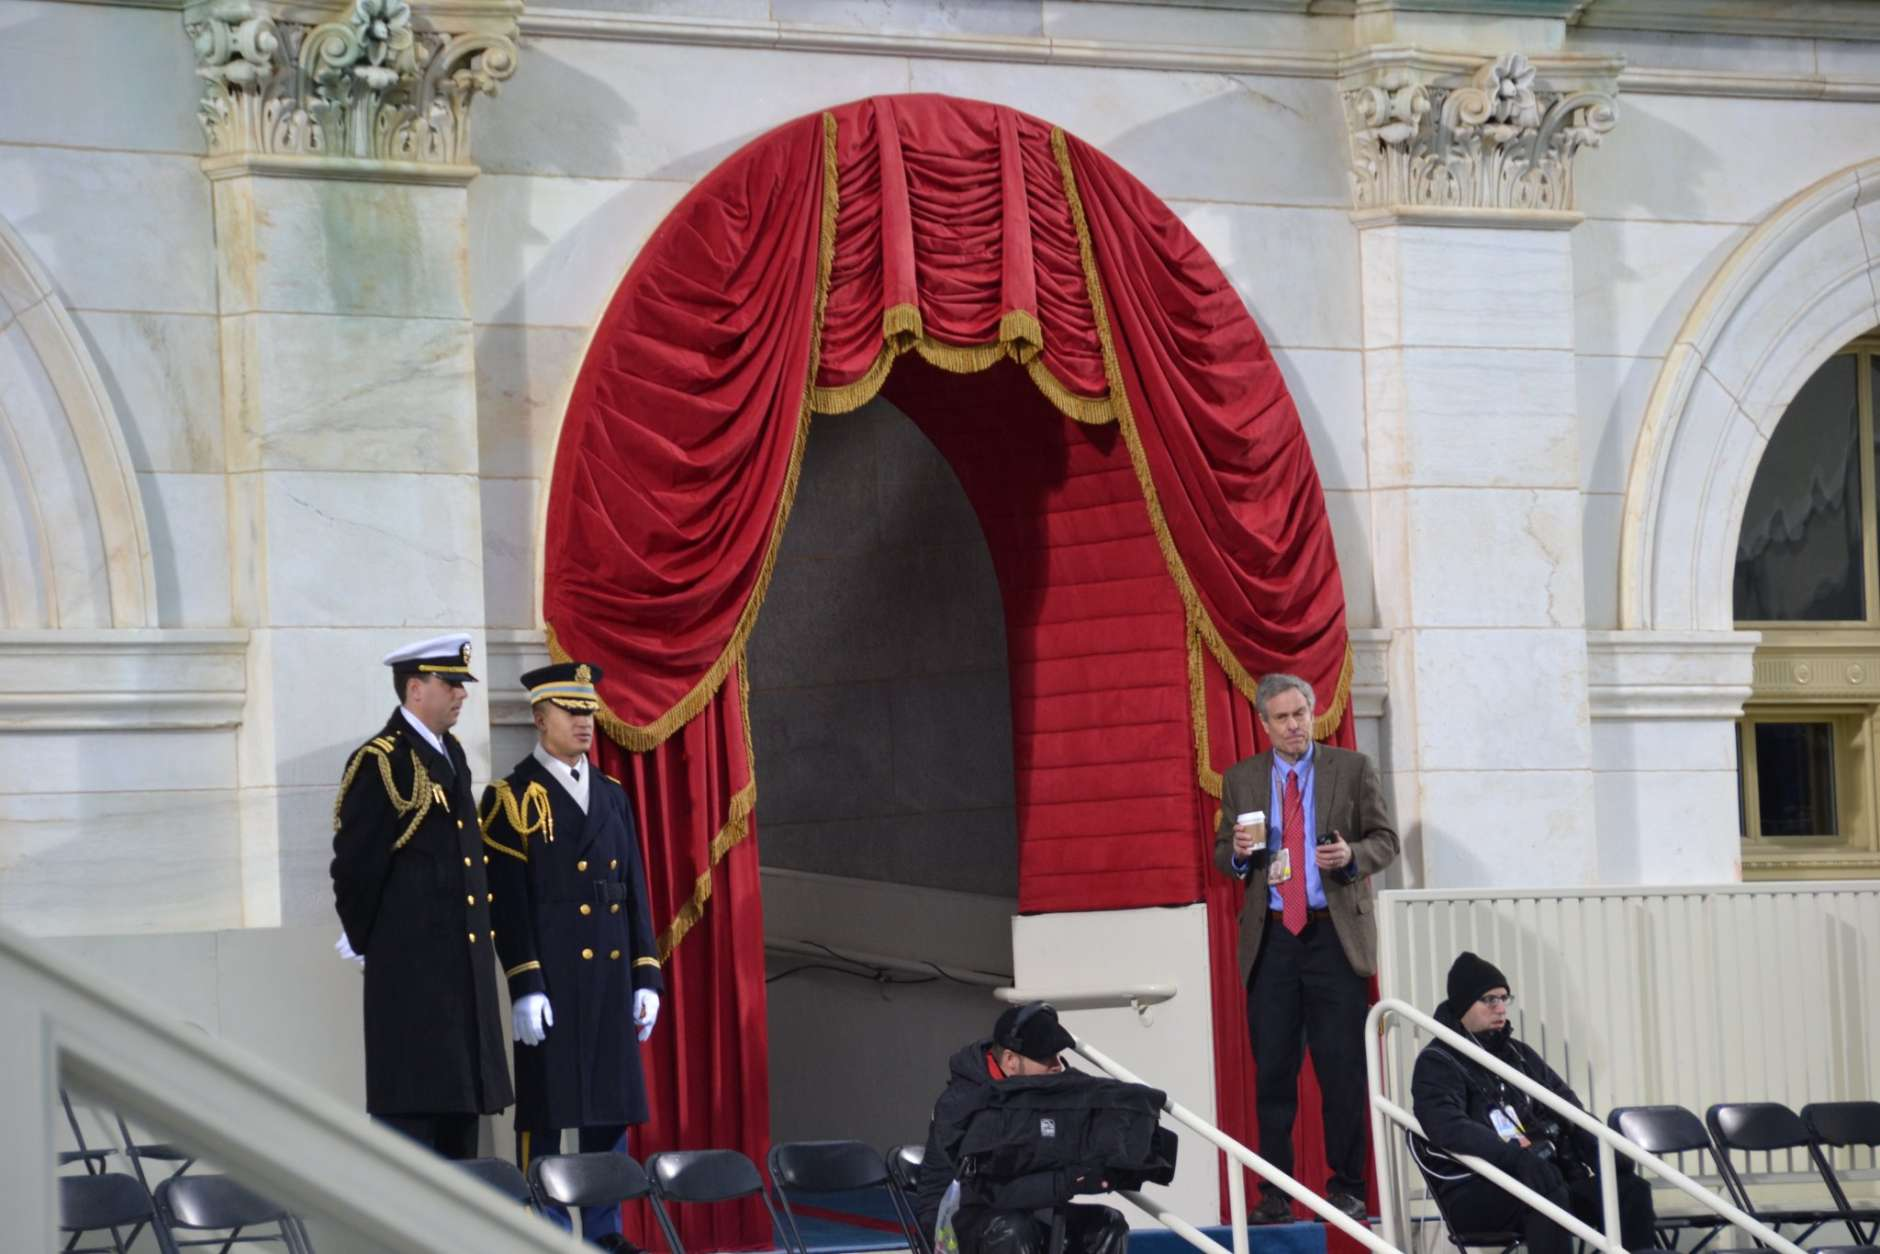 When Donald Trump walks back out through this portico, he will be the 45th president of the United States. (WTOP/Brennan Haselton)